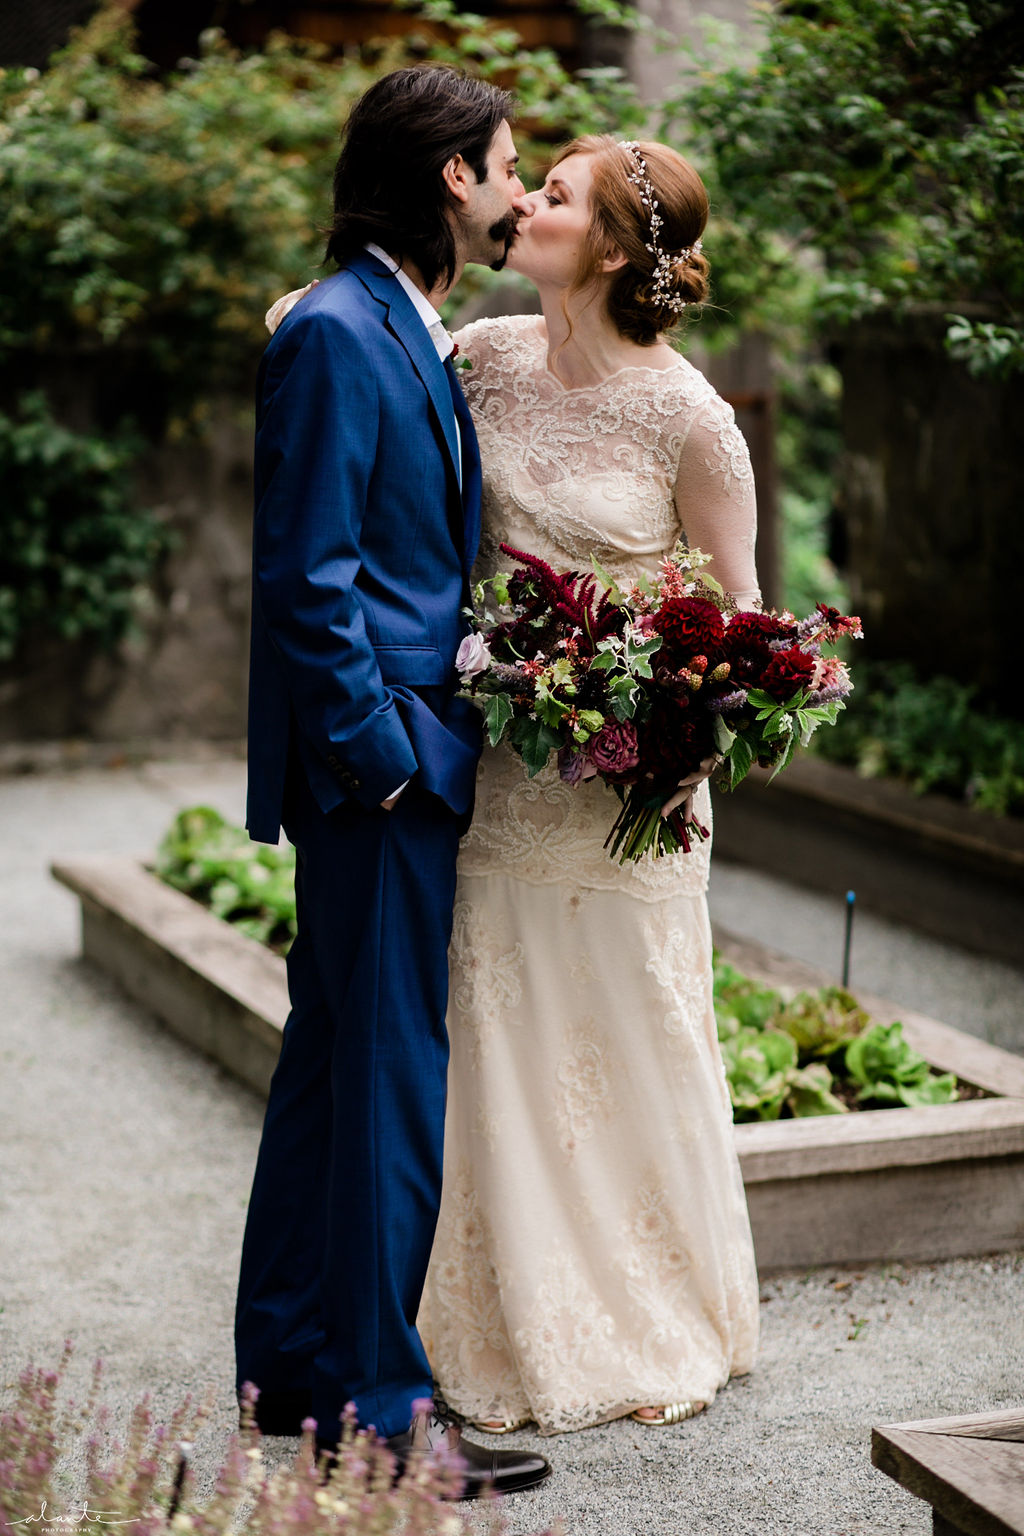 Bridalbliss.com | Seattle Wedding | Washington Event Coordination and Design | Alante Photography